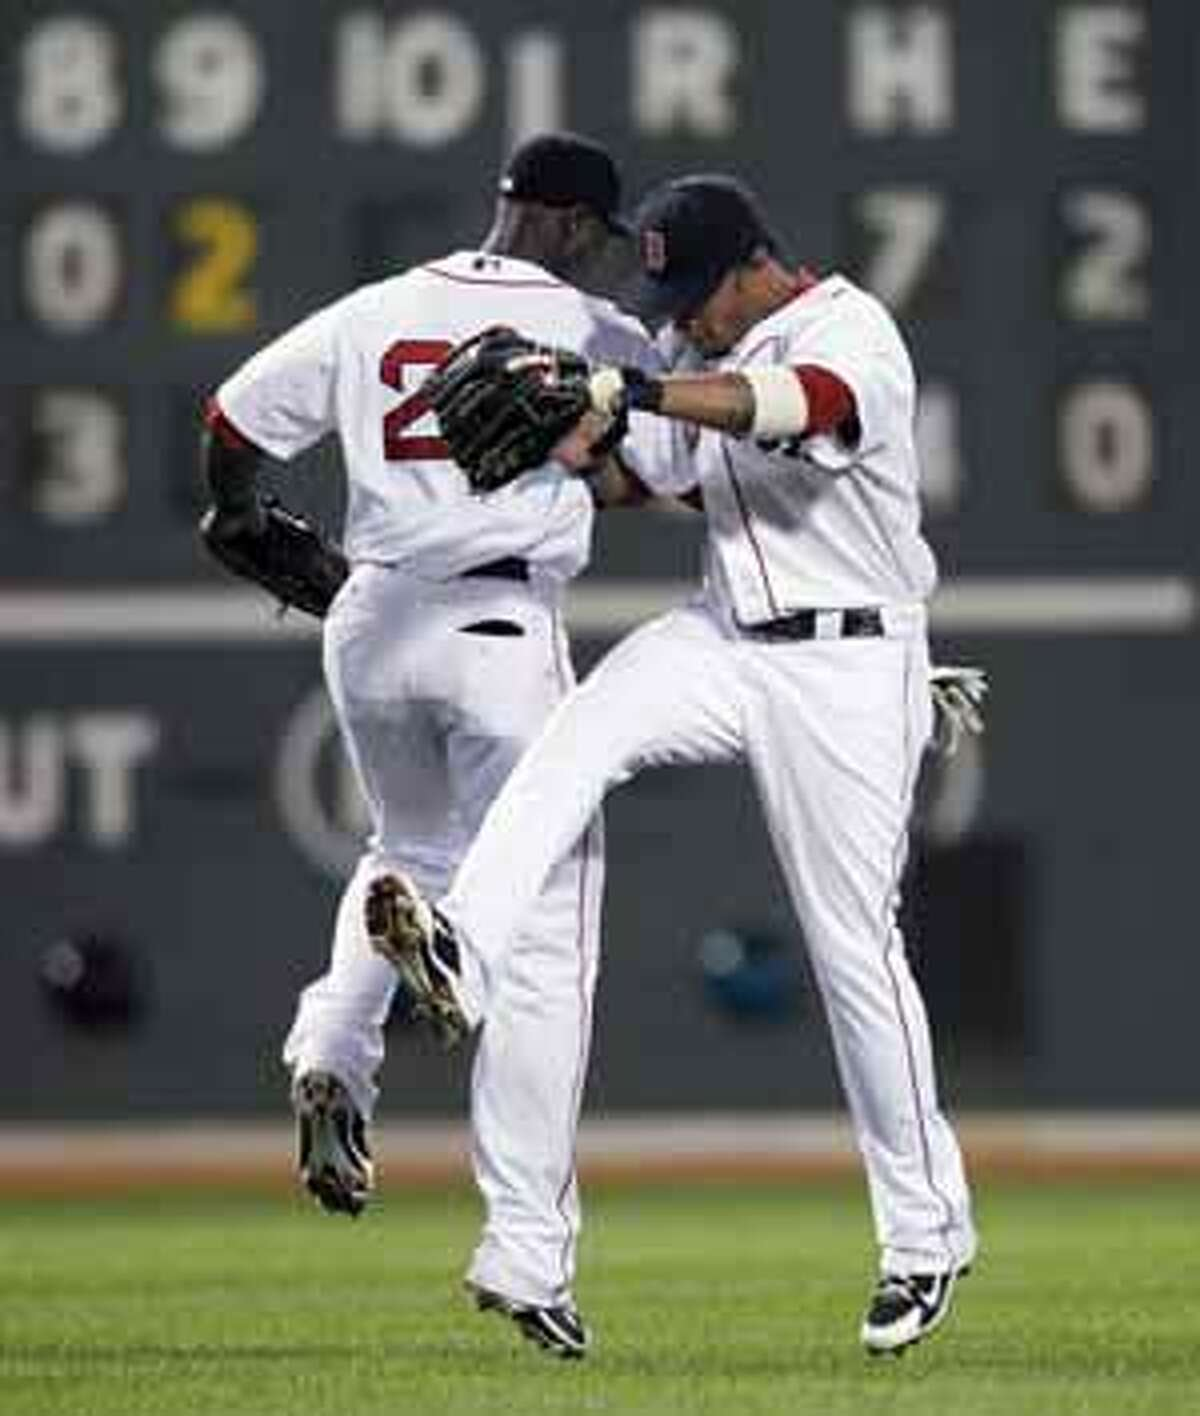 Boston Red Sox's Mike Cameron, left, and Darnell McDonald celebrate their 9-3 win in a baseball game against the Baltimore Orioles, Saturday, July 3, 2010, in Boston. (AP Photo/Michael Dwyer)